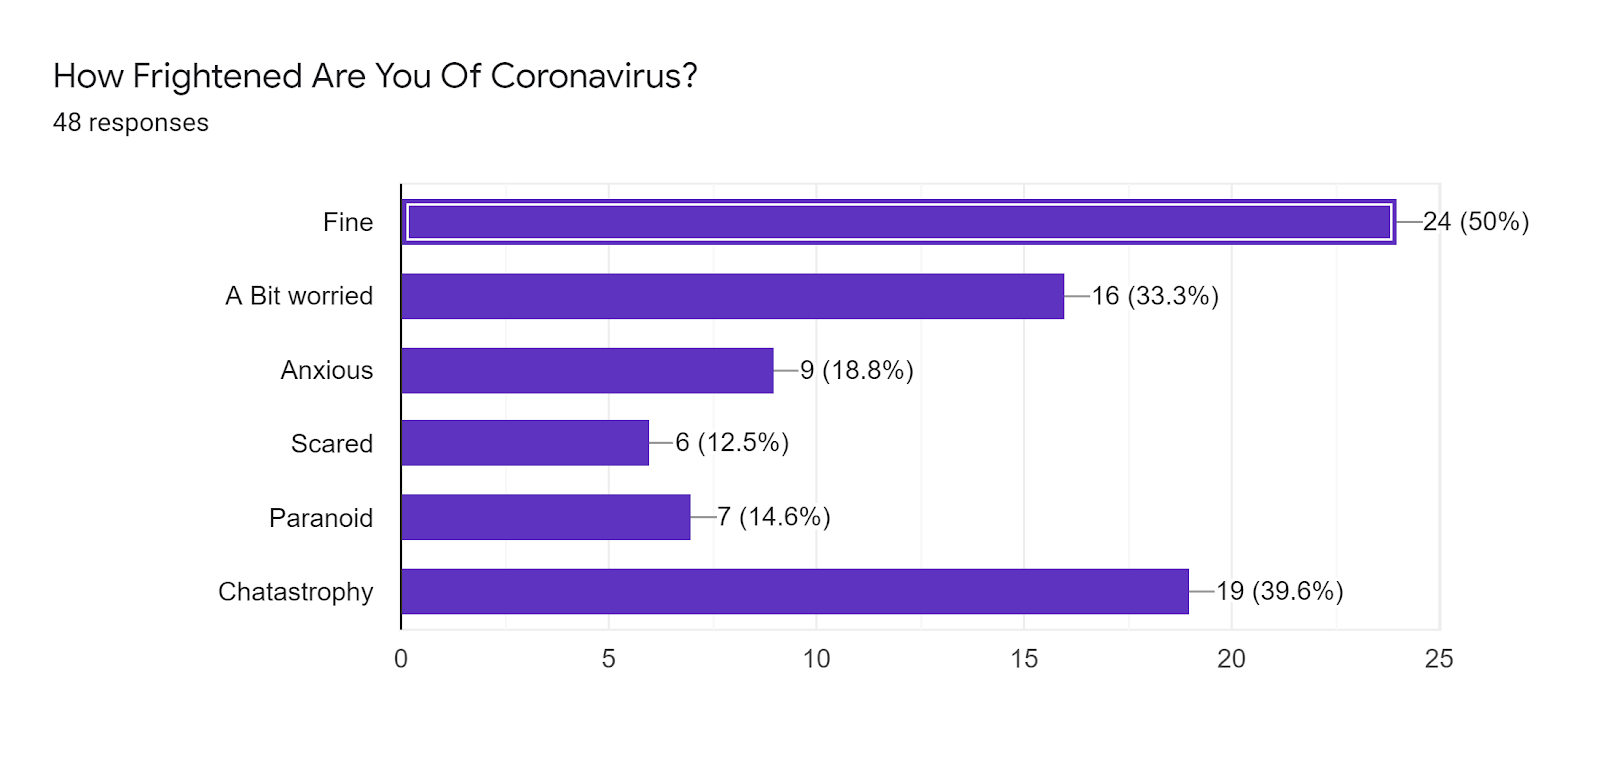 Forms response chart. Question title: How Frightened Are You Of Coronavirus?. Number of responses: 48 responses.